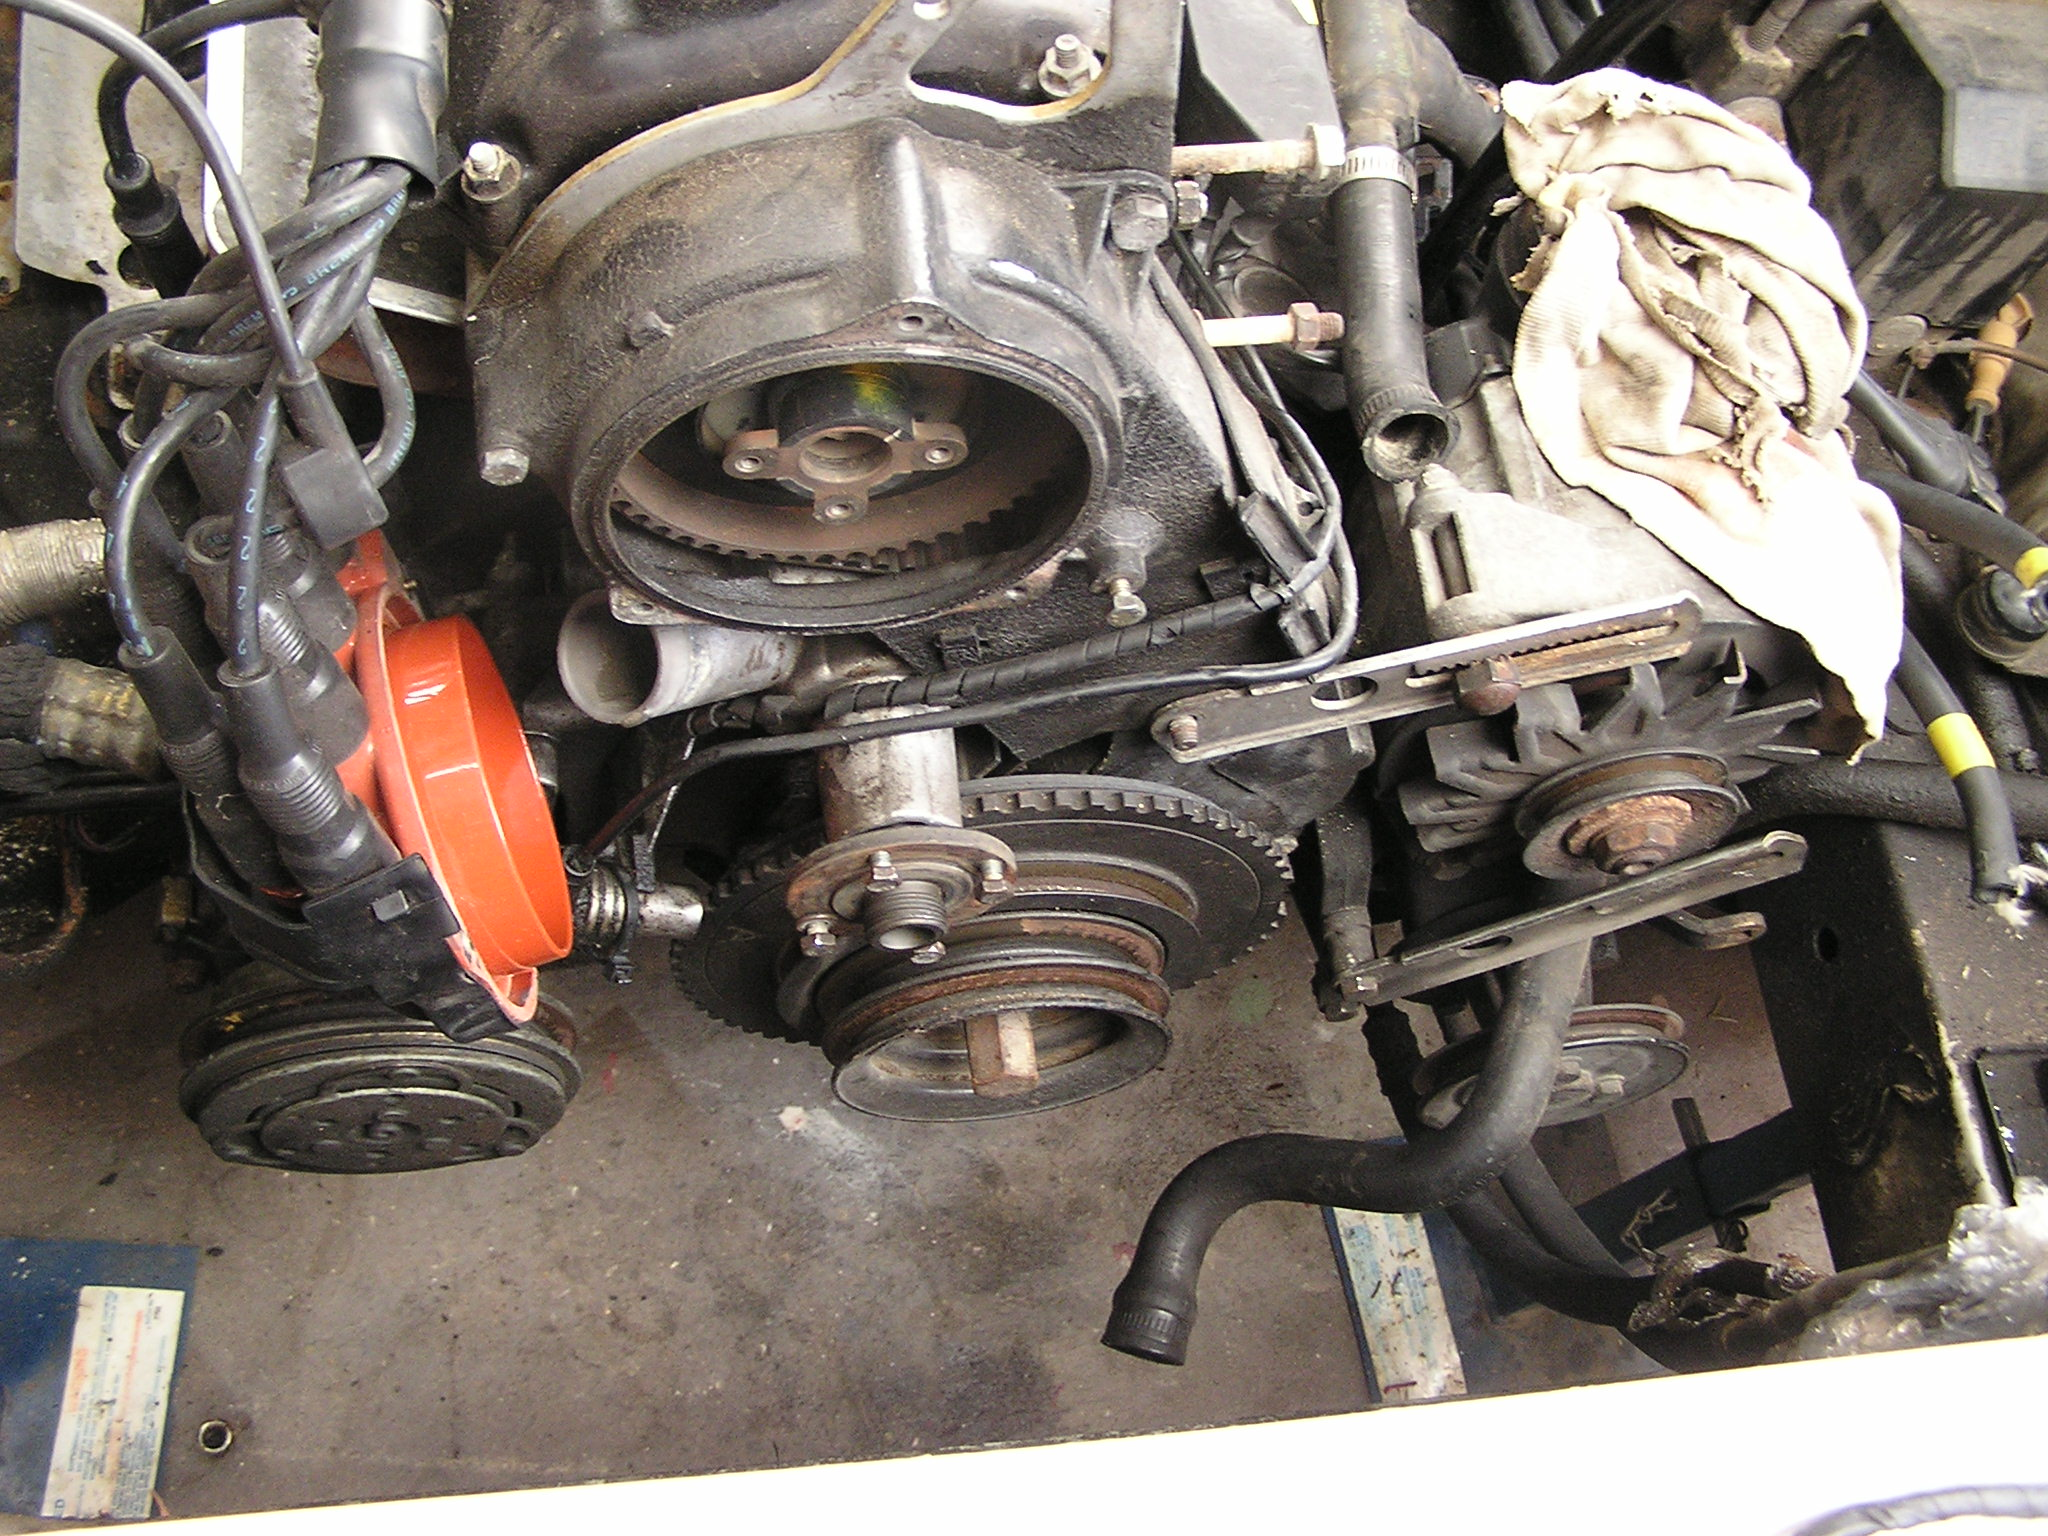 Pic together with Pic additionally D E Crankshaft Sensor Picture likewise Nissan Yd Ddti Engine as well Maxresdefault. on bmw 325i crankshaft position sensor location